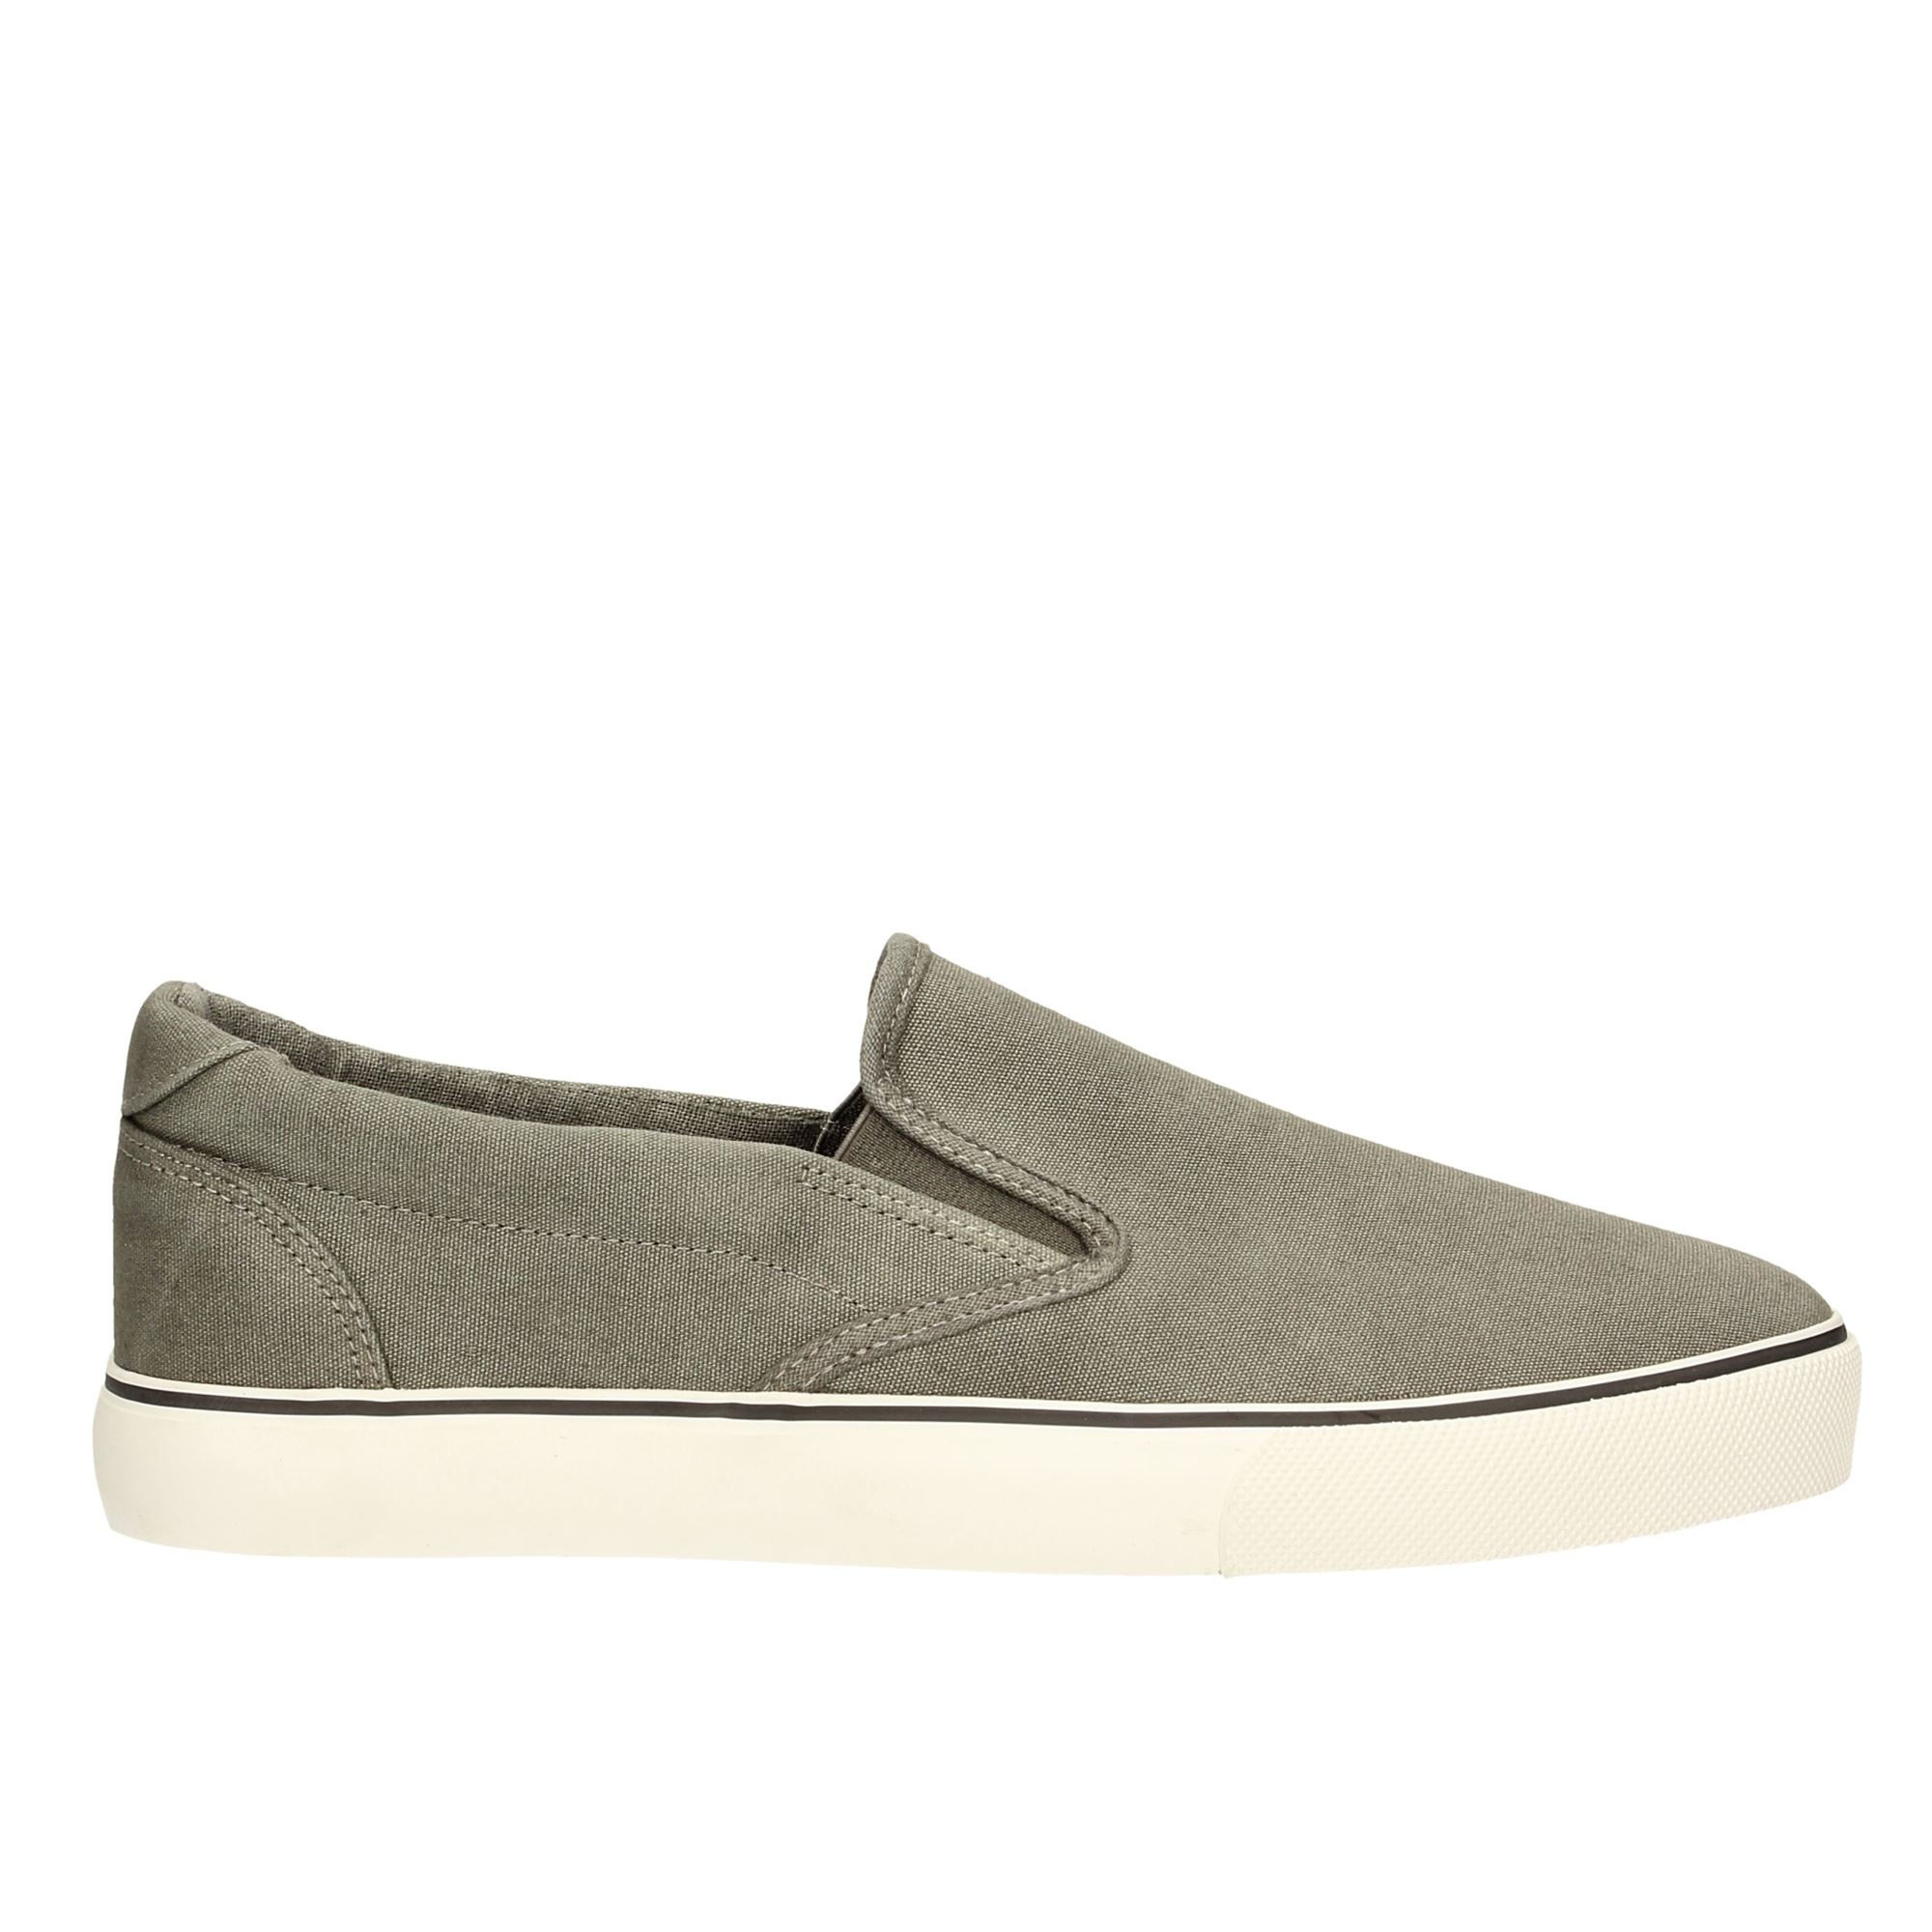 Tata Italia Shoes Man Slip On Grey GCM17-011